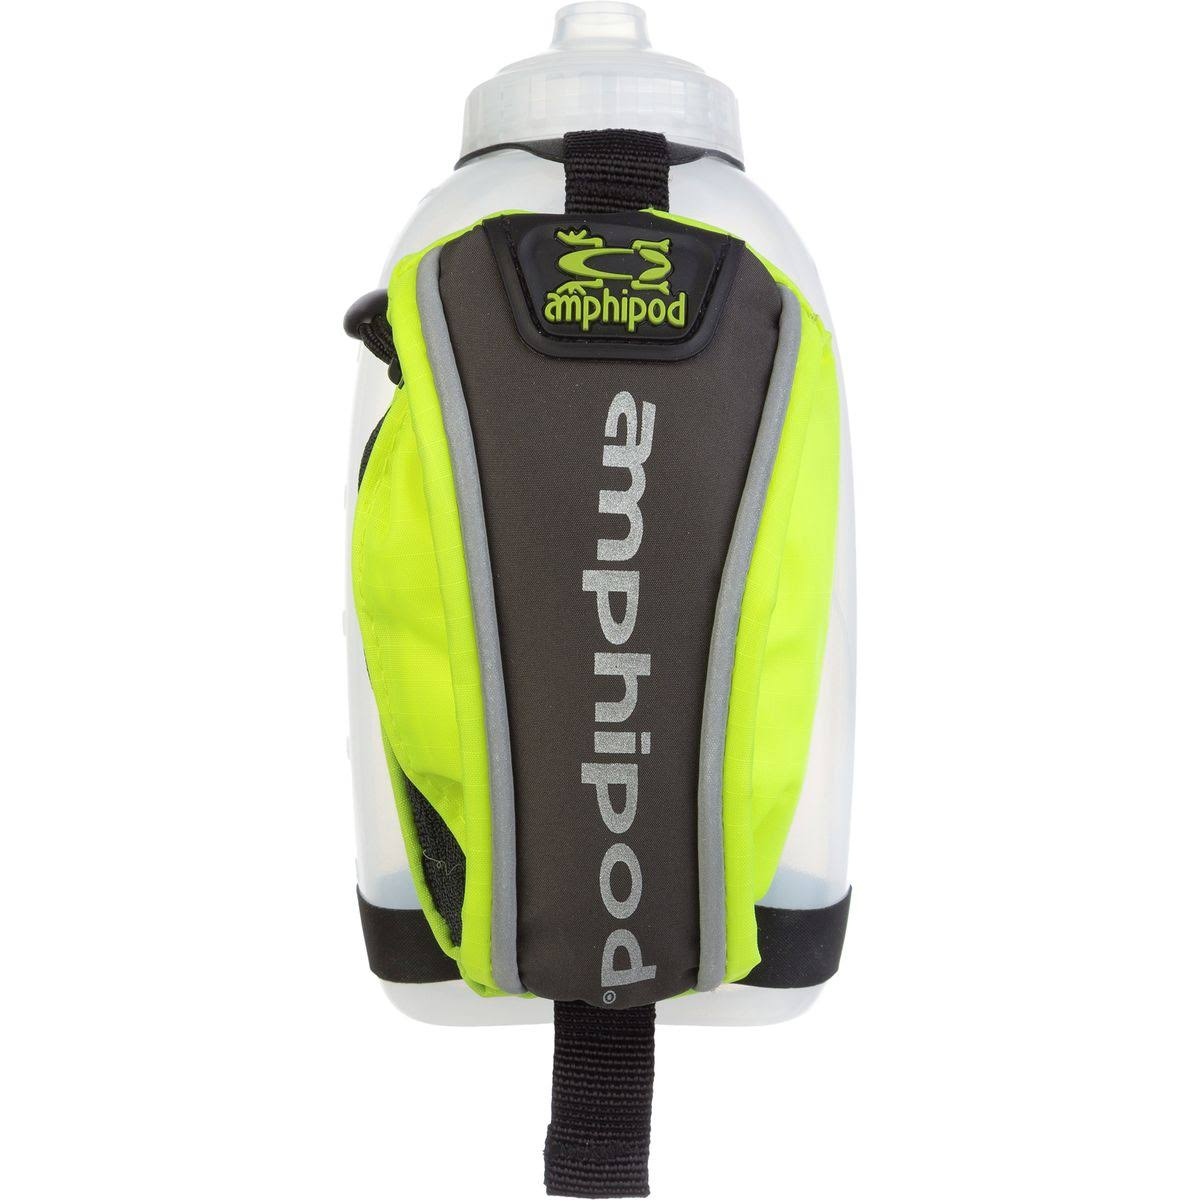 Amphipod Hydraform Jett-lite Thermal Handheld Hydration Pack - Hi Viz, 12oz